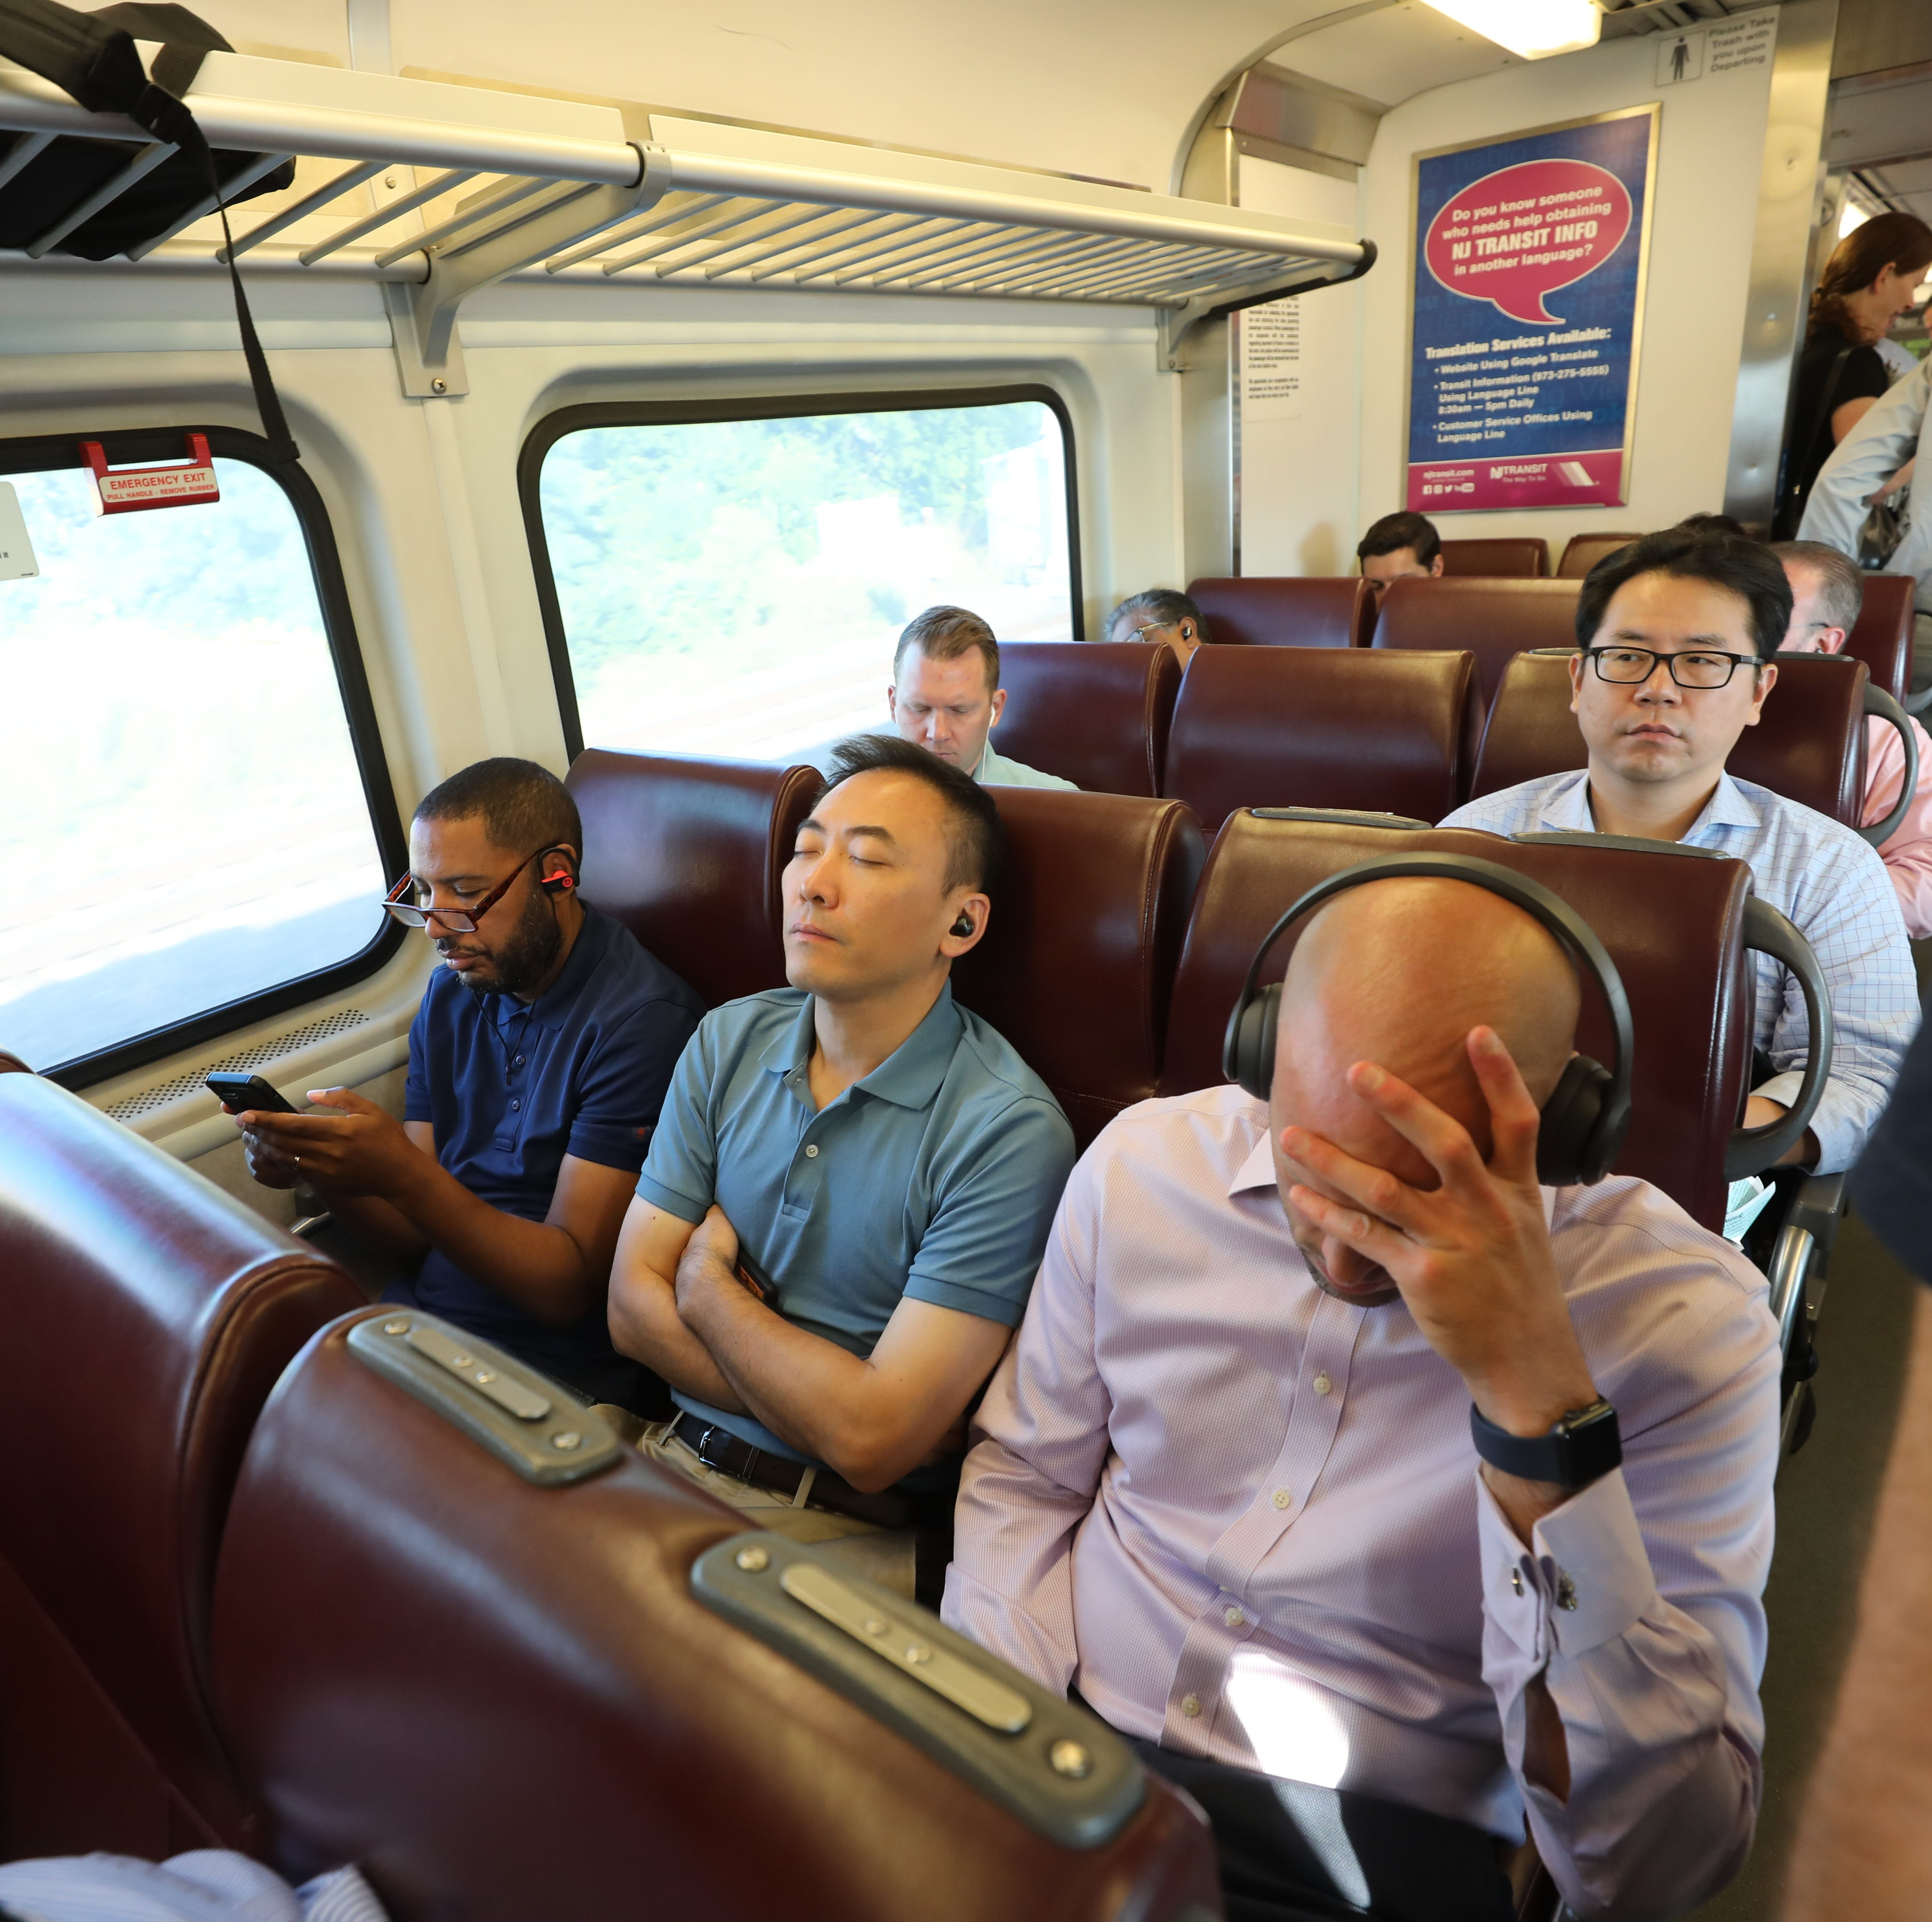 More NJ Transit service cuts coming because of positive train control